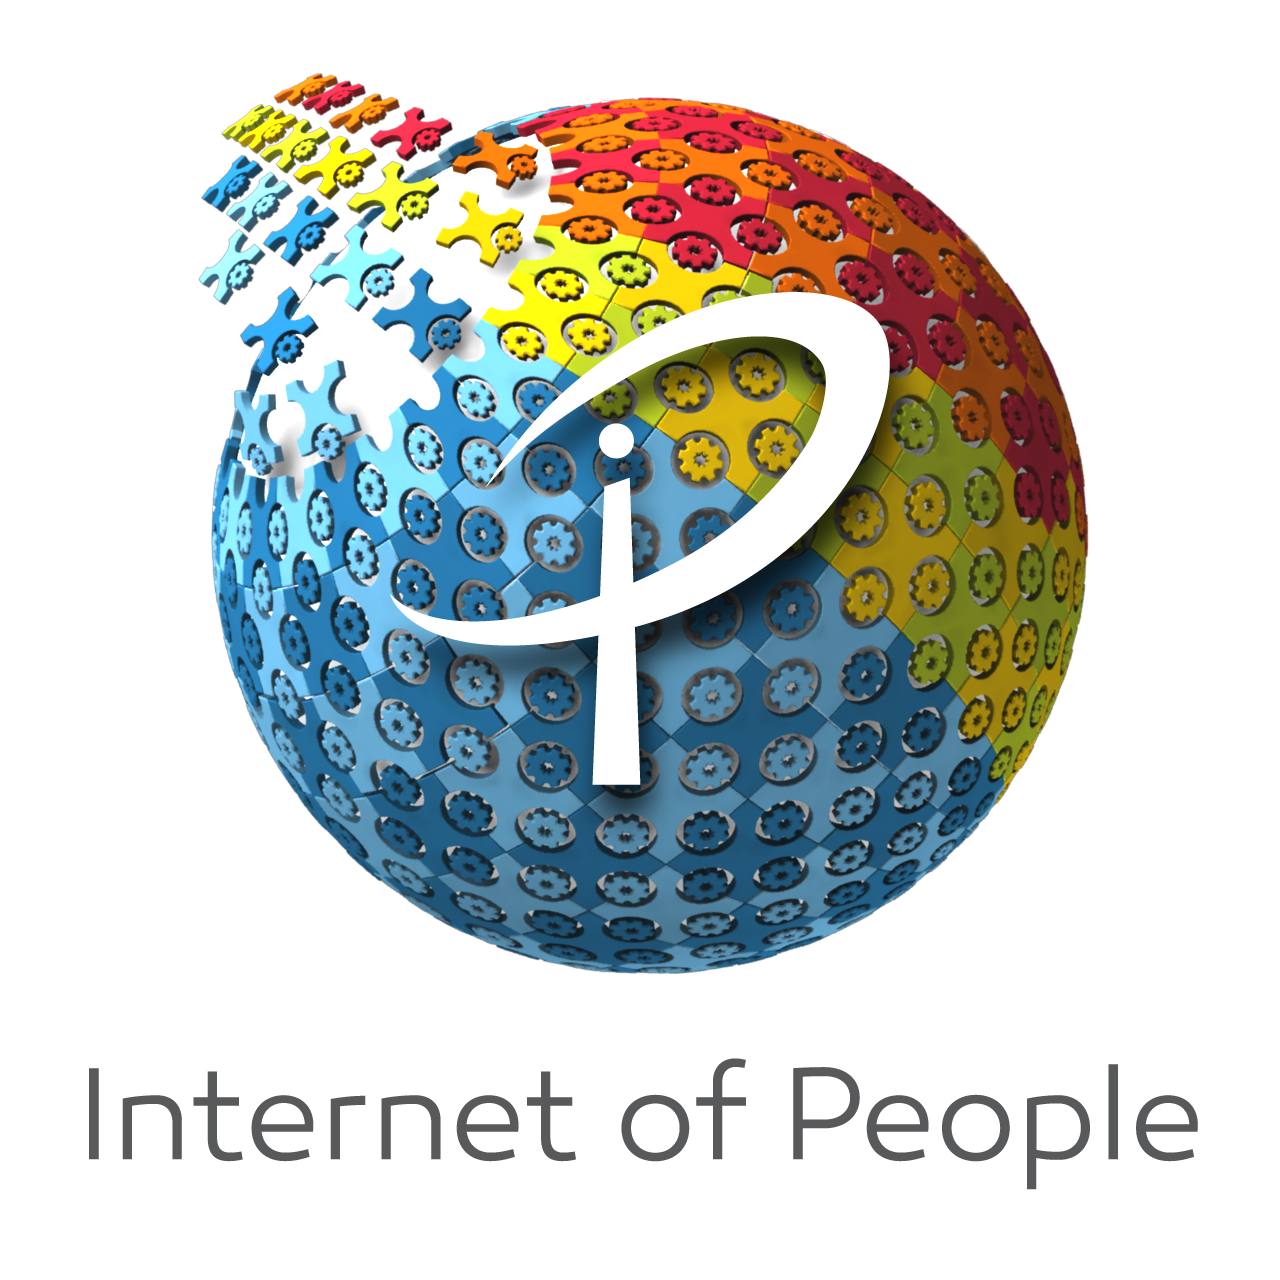 Iop fermat the internet. Vision clipart future scope